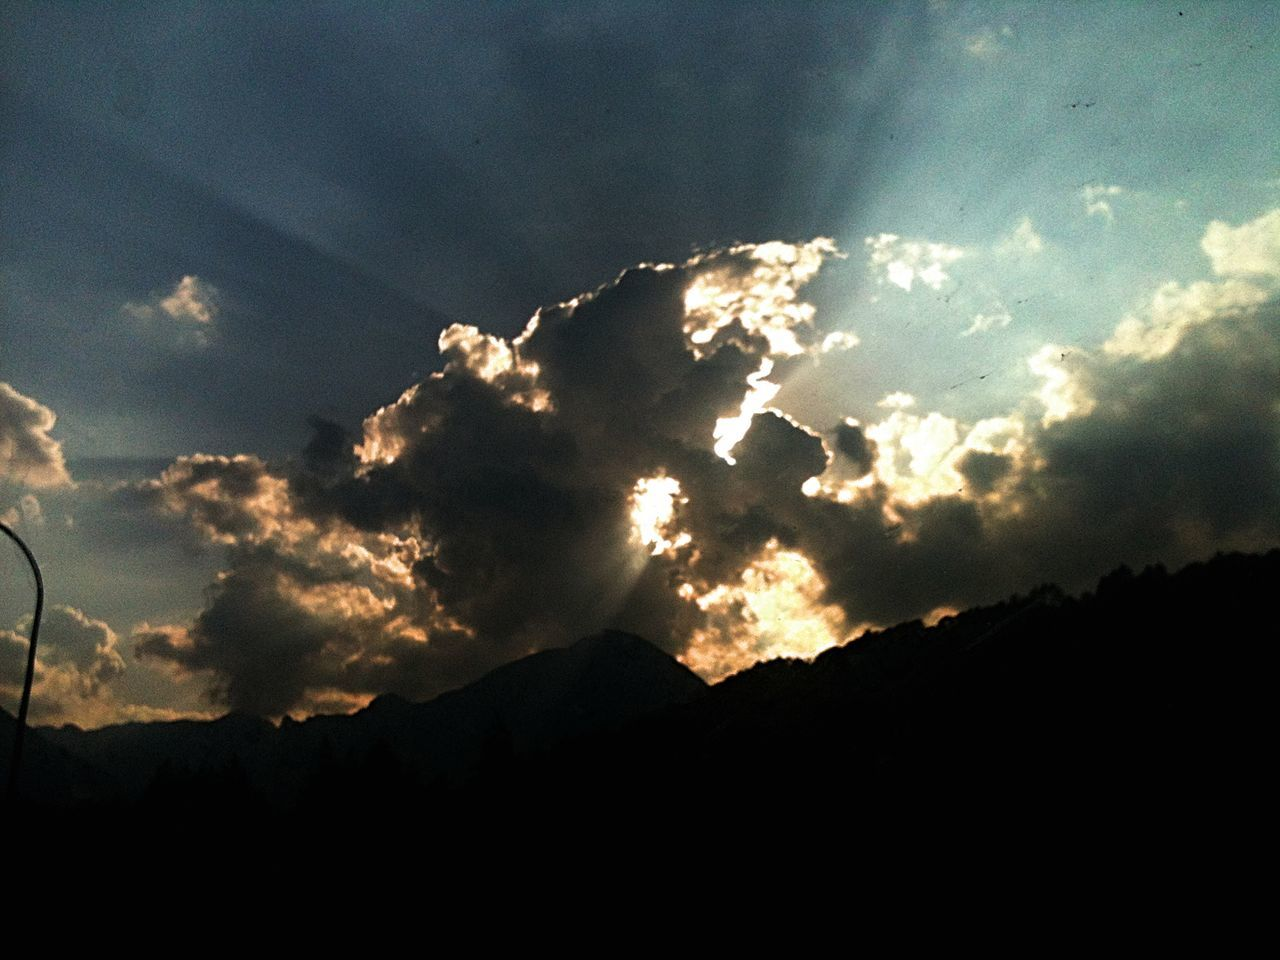 clouds cover the sun slowly makes its way, the sun's rays give a stage show. Beauty In Nature Cloud - Sky Day Dramatic Sky Low Angle View Nature No People Outdoors Scenics Silhouette Sky Sunbeam Sunset Tranquility EyeEmNewHere